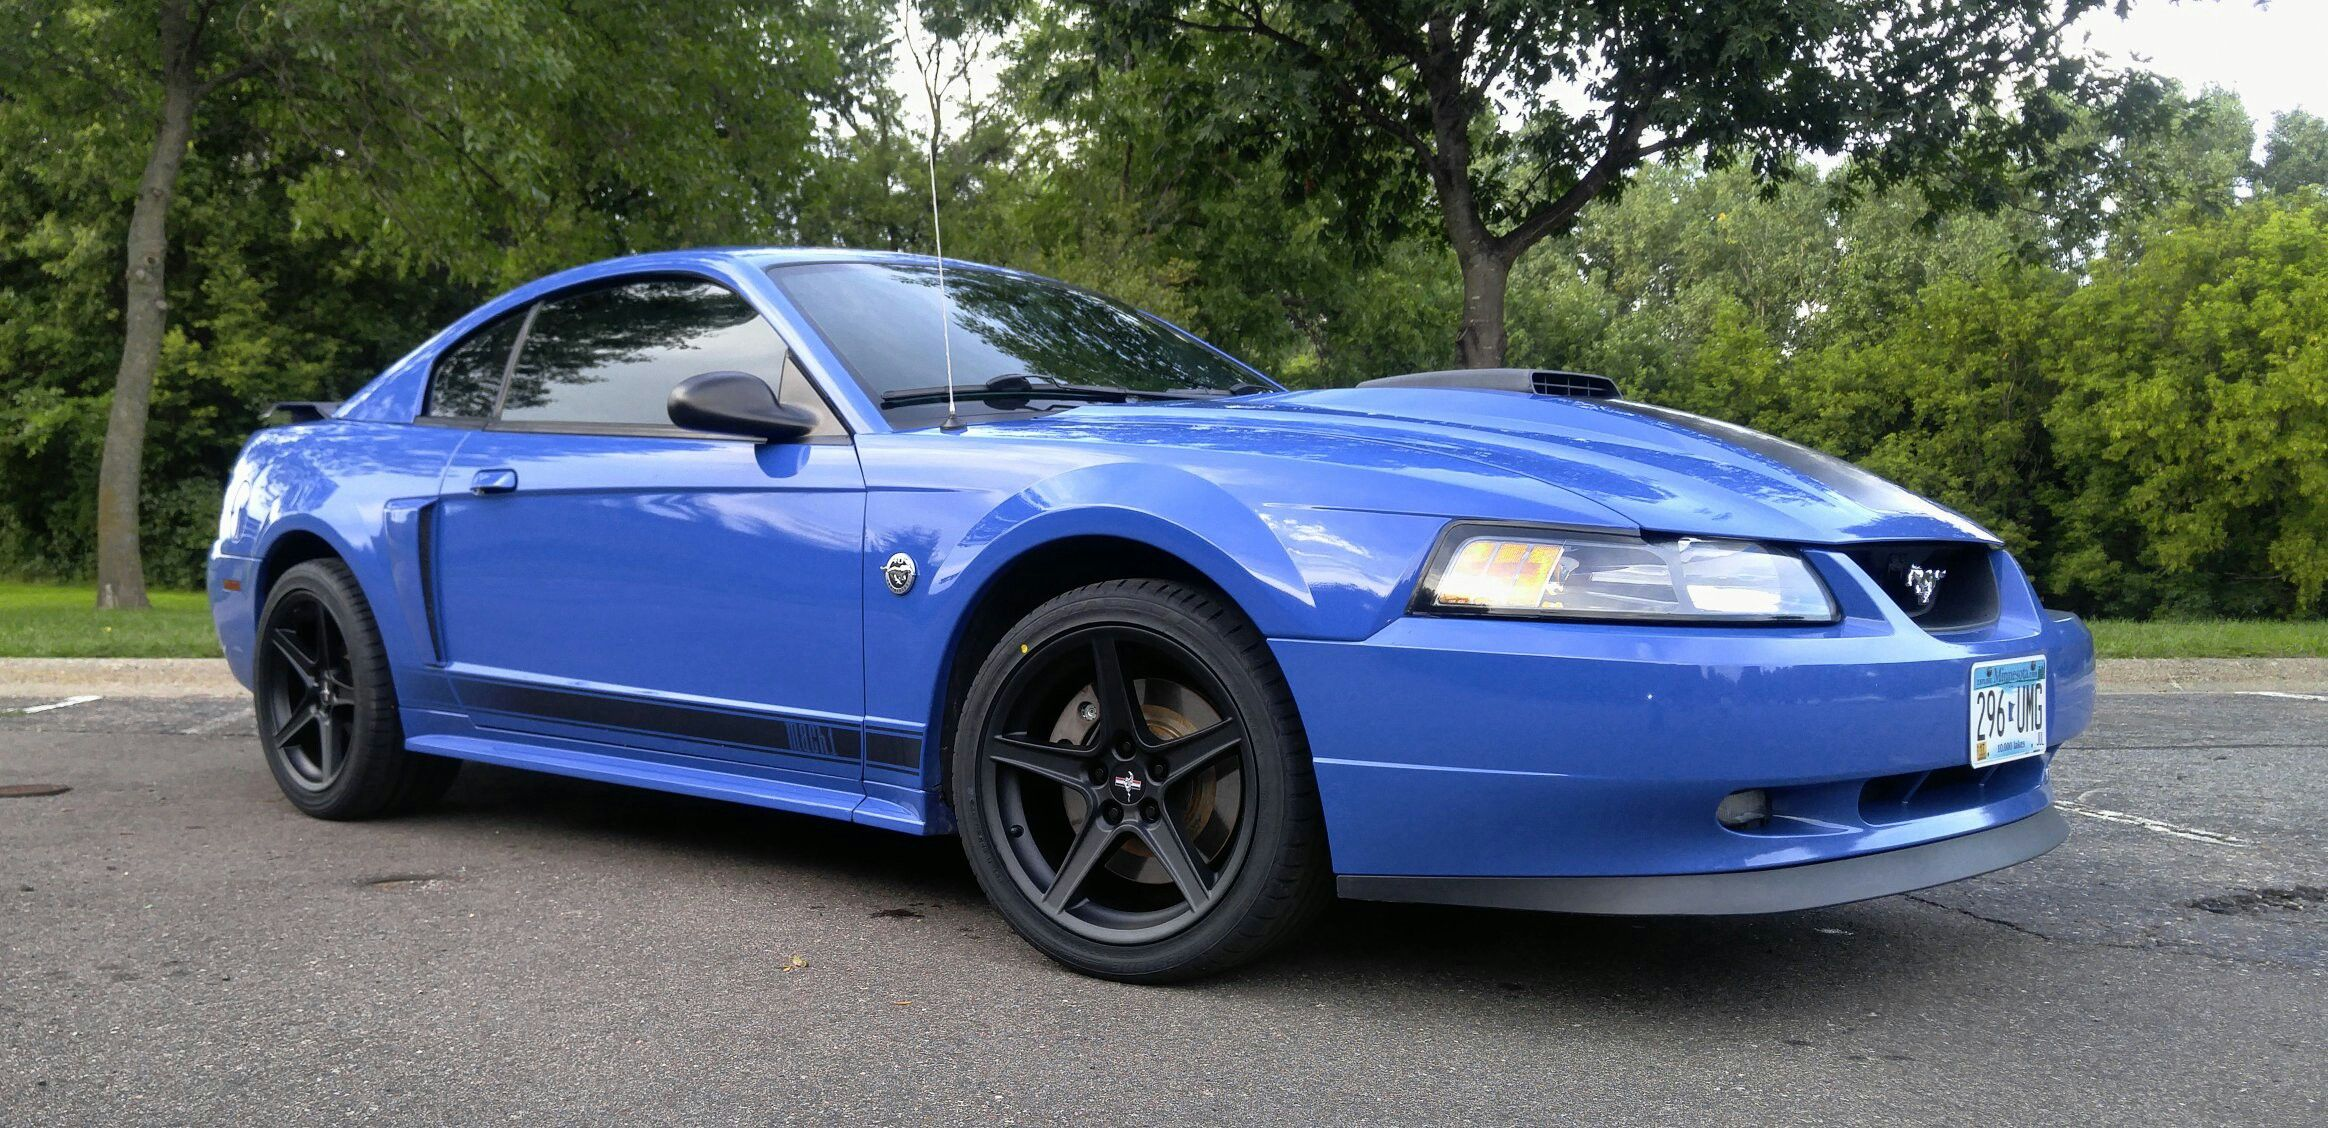 I finally got my hands on a mach 1 2004 azure blue here is my first